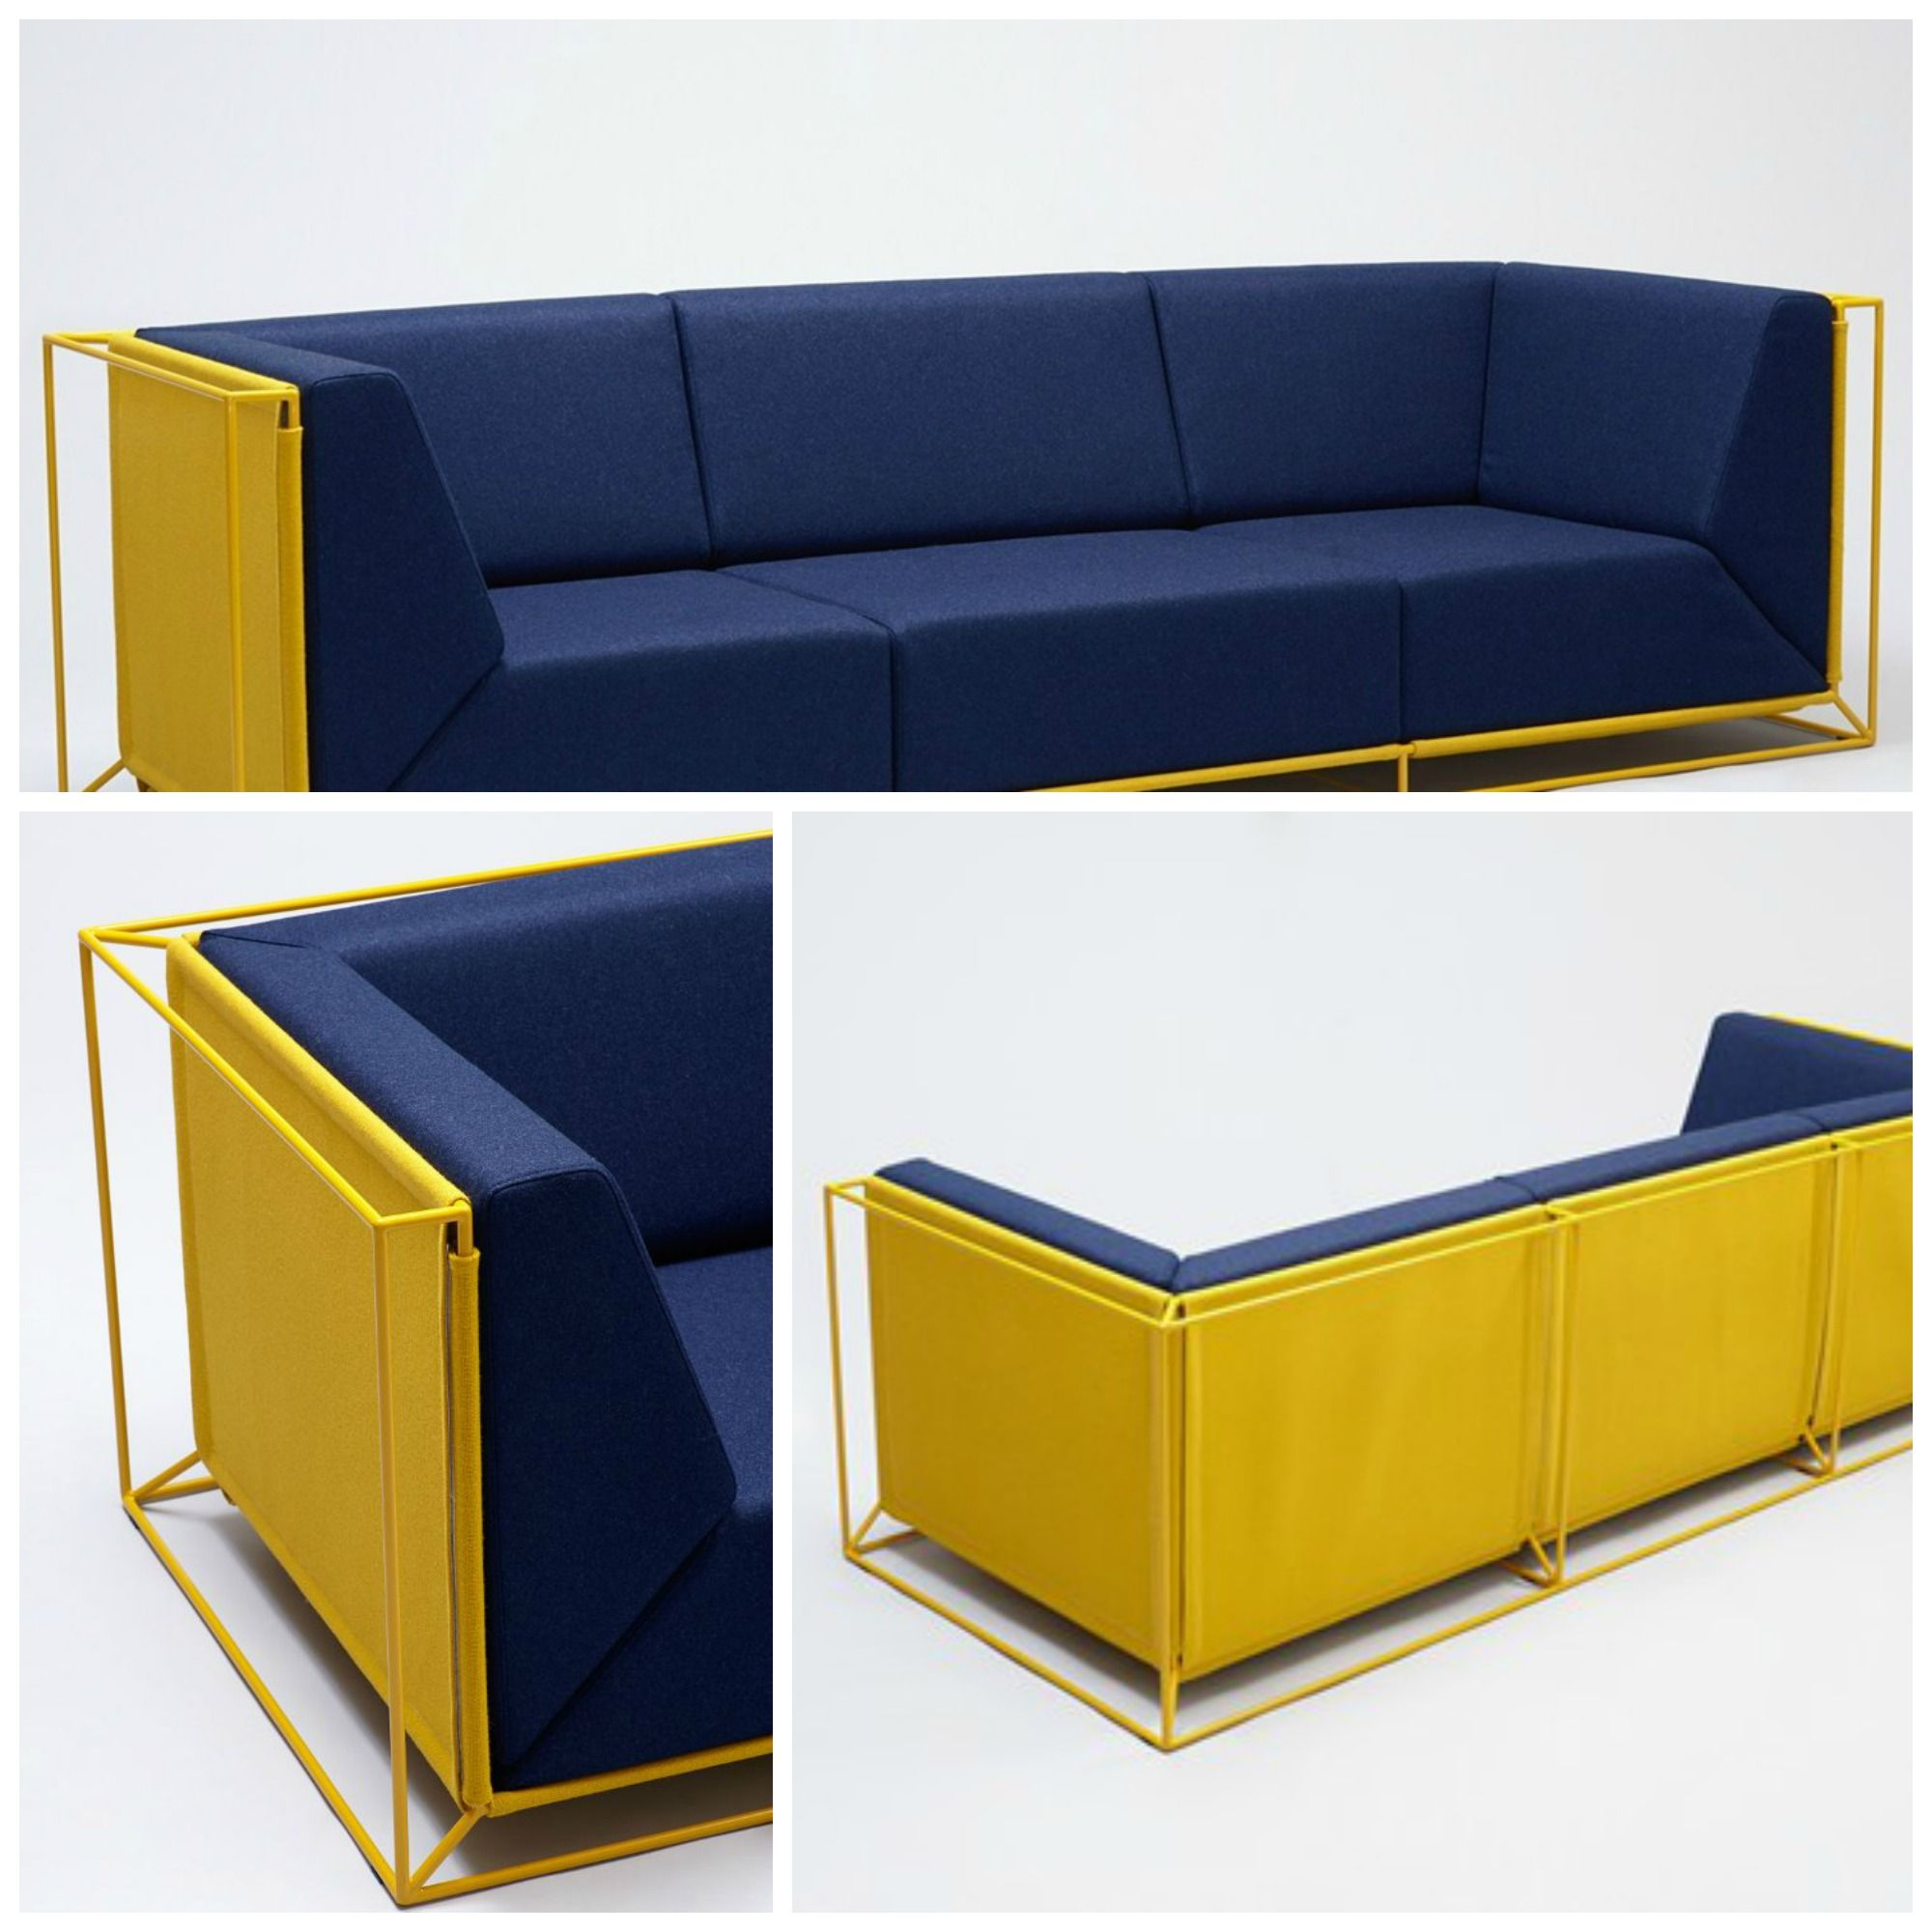 Wonderful Philippe Nigro Sofa   Google Search Amazing Design